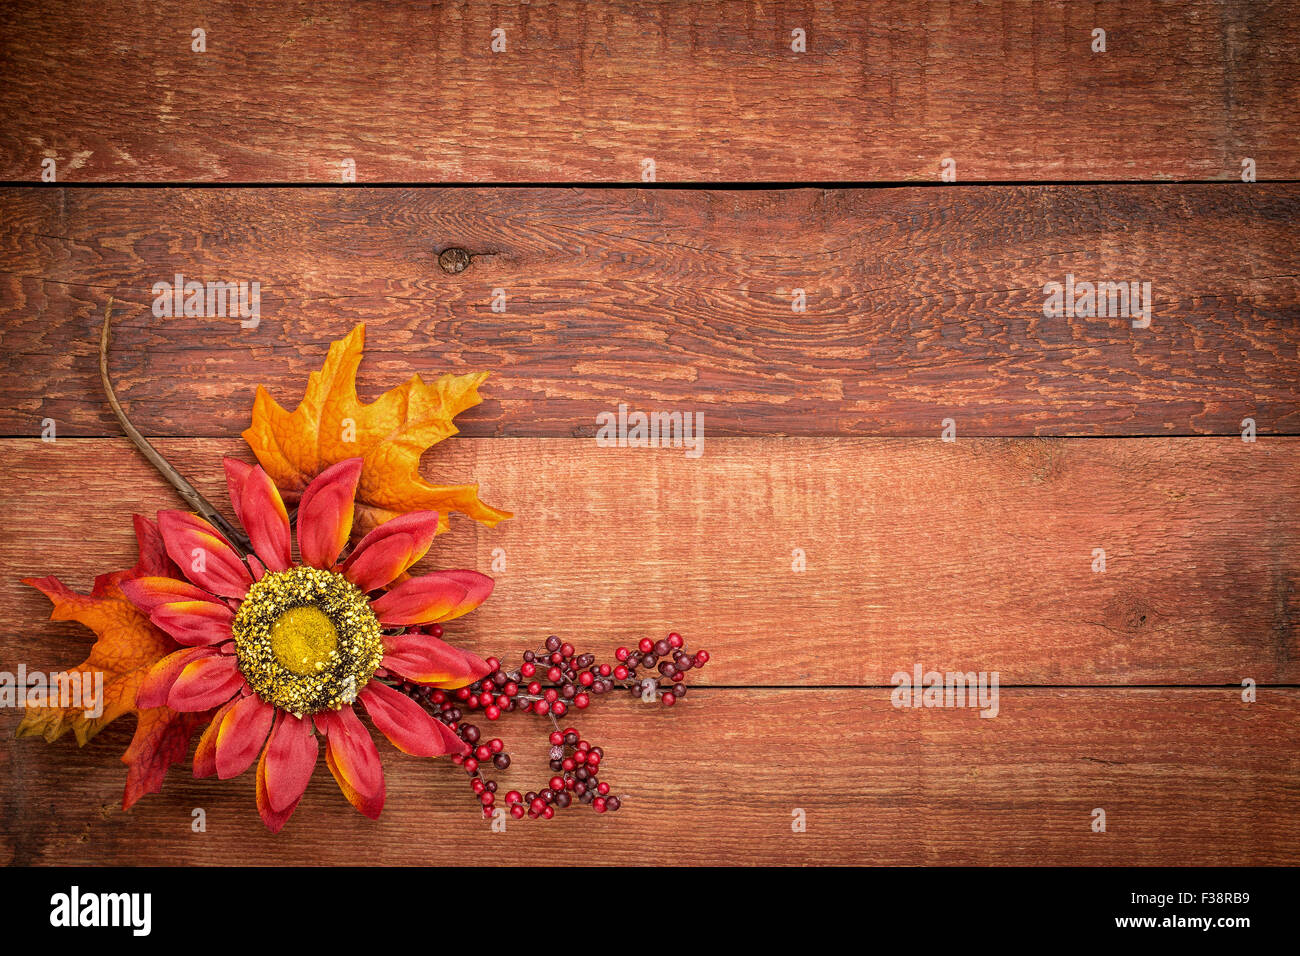 Grunge Red Barn Wood Background With Colorful Fall